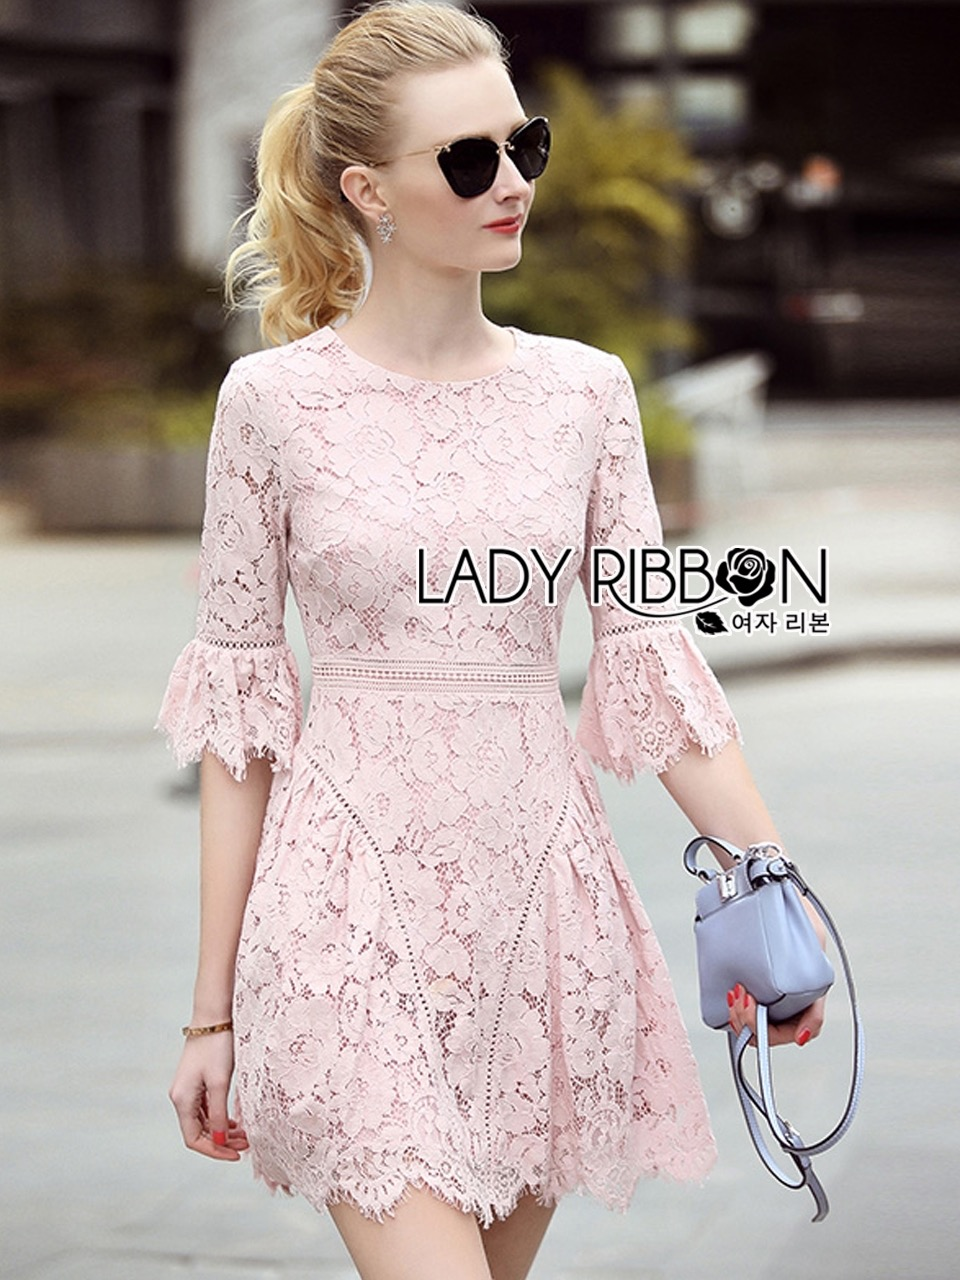 Lady Ribbon's Made Lady Lindsay Feminine Chic Baby Pink Lace Dress